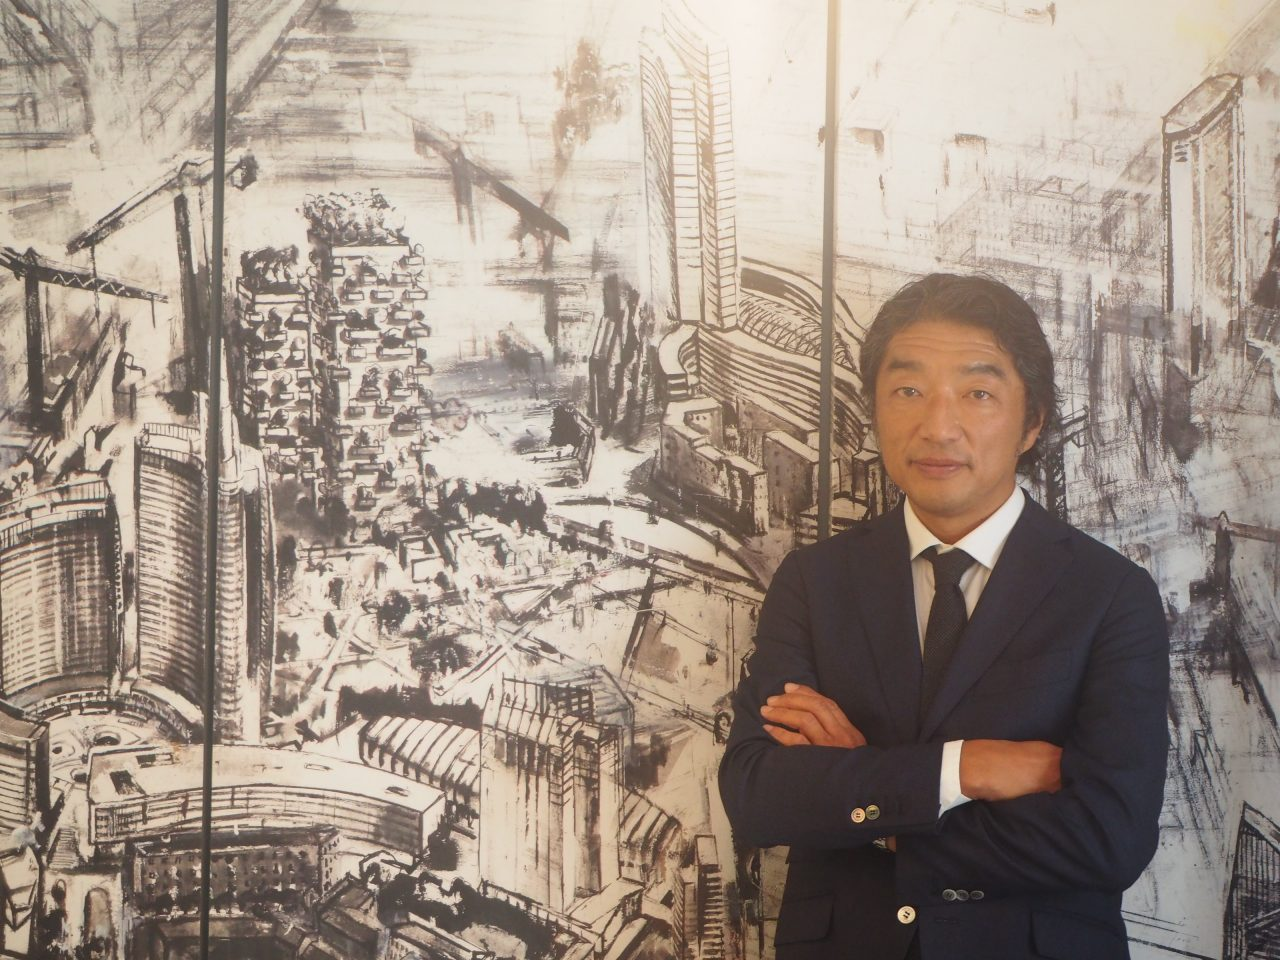 IL SOLE 24 ORE INTERVIEW WITH ISSEI KOMI – The future of High Street post Covid19